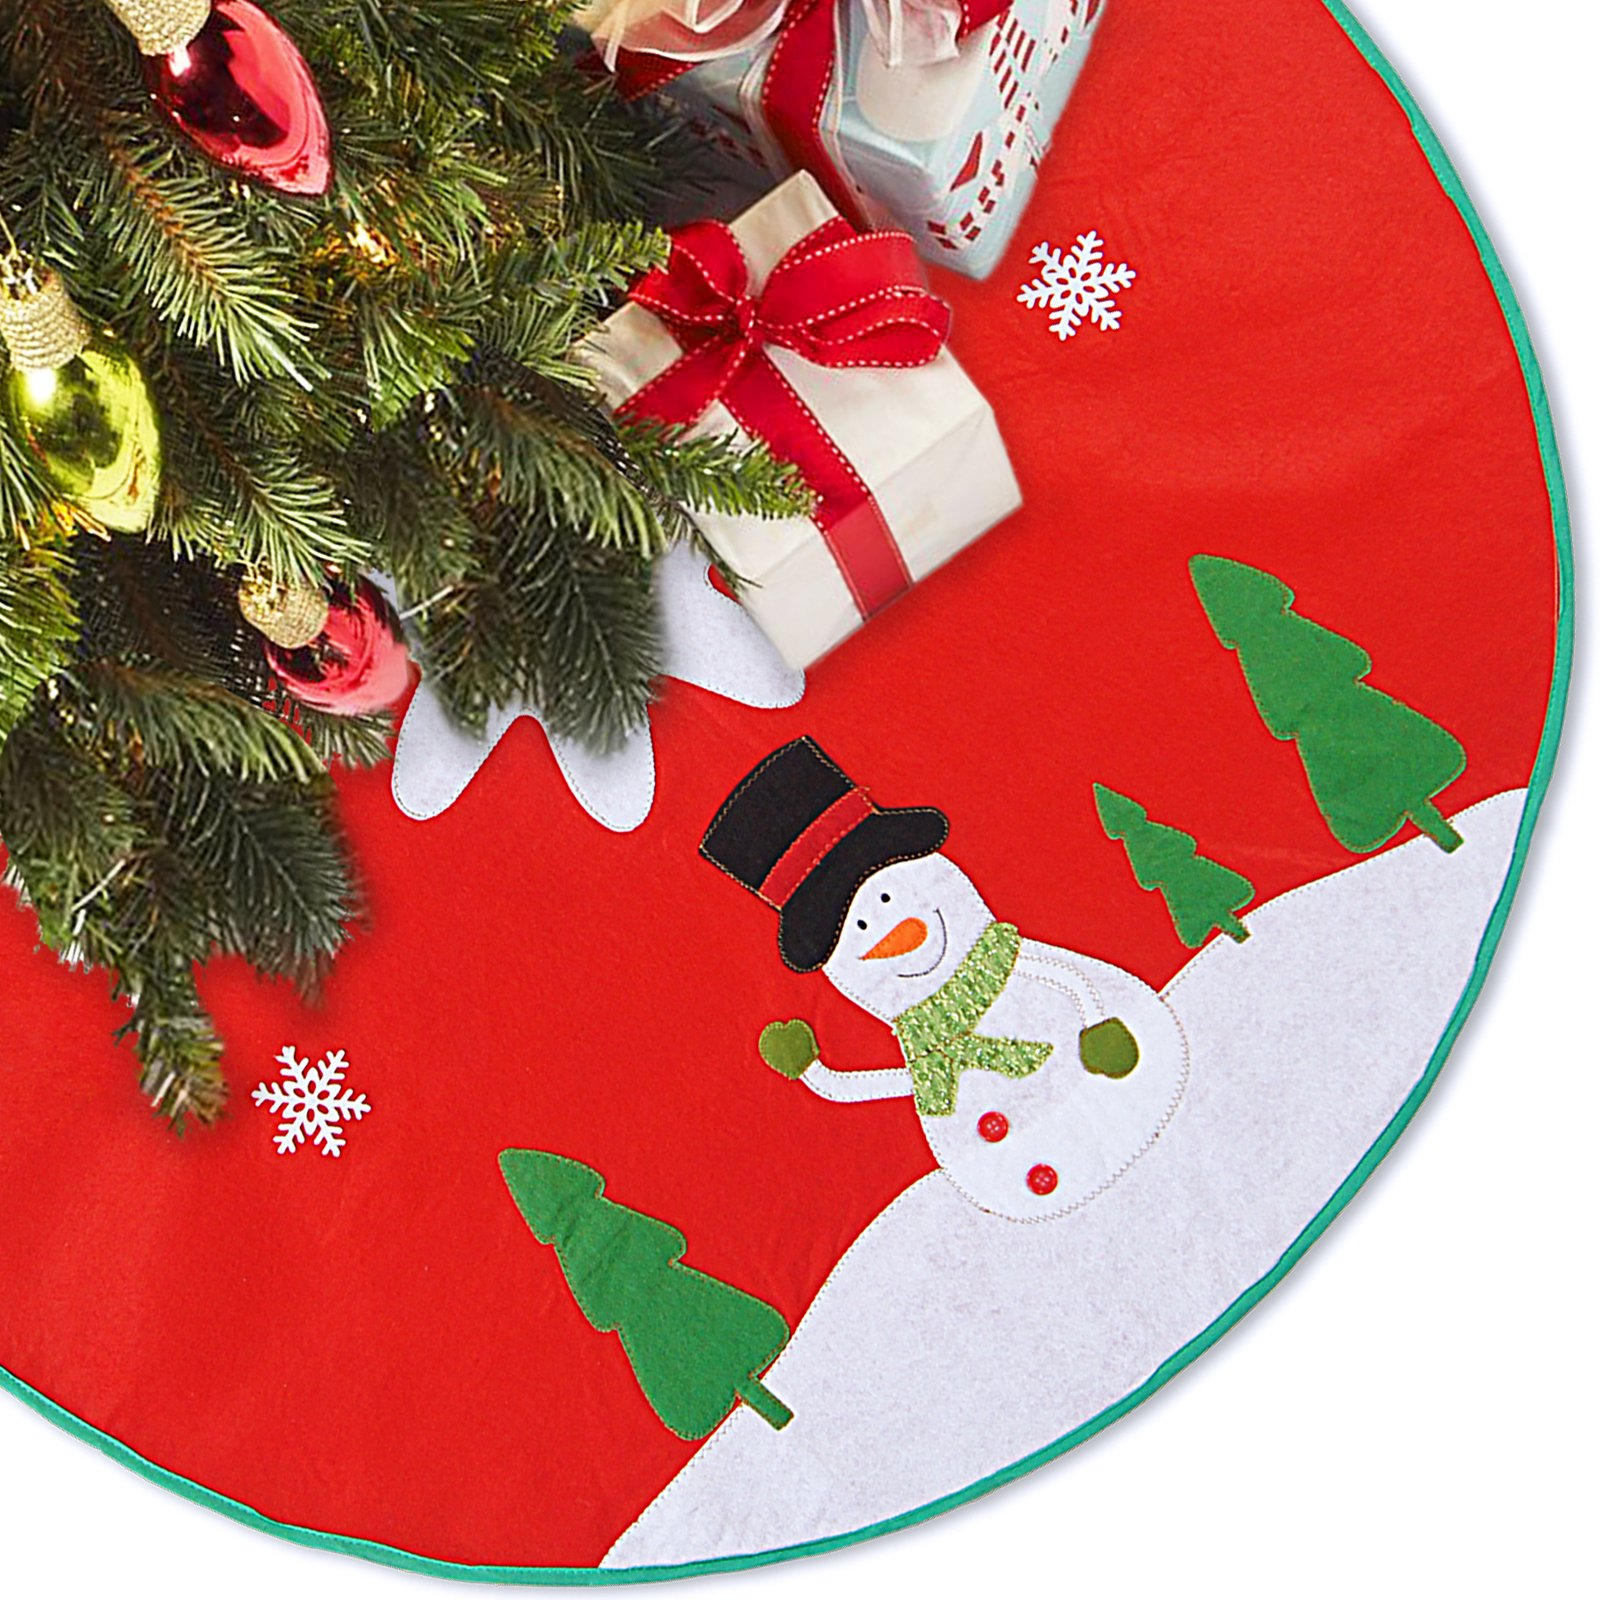 LimBridge 48'' Rustic Red Felt Christmas Tree Skirt with Stitched Snowman Snowflake Xmas Holiday Decoration by LimBridge